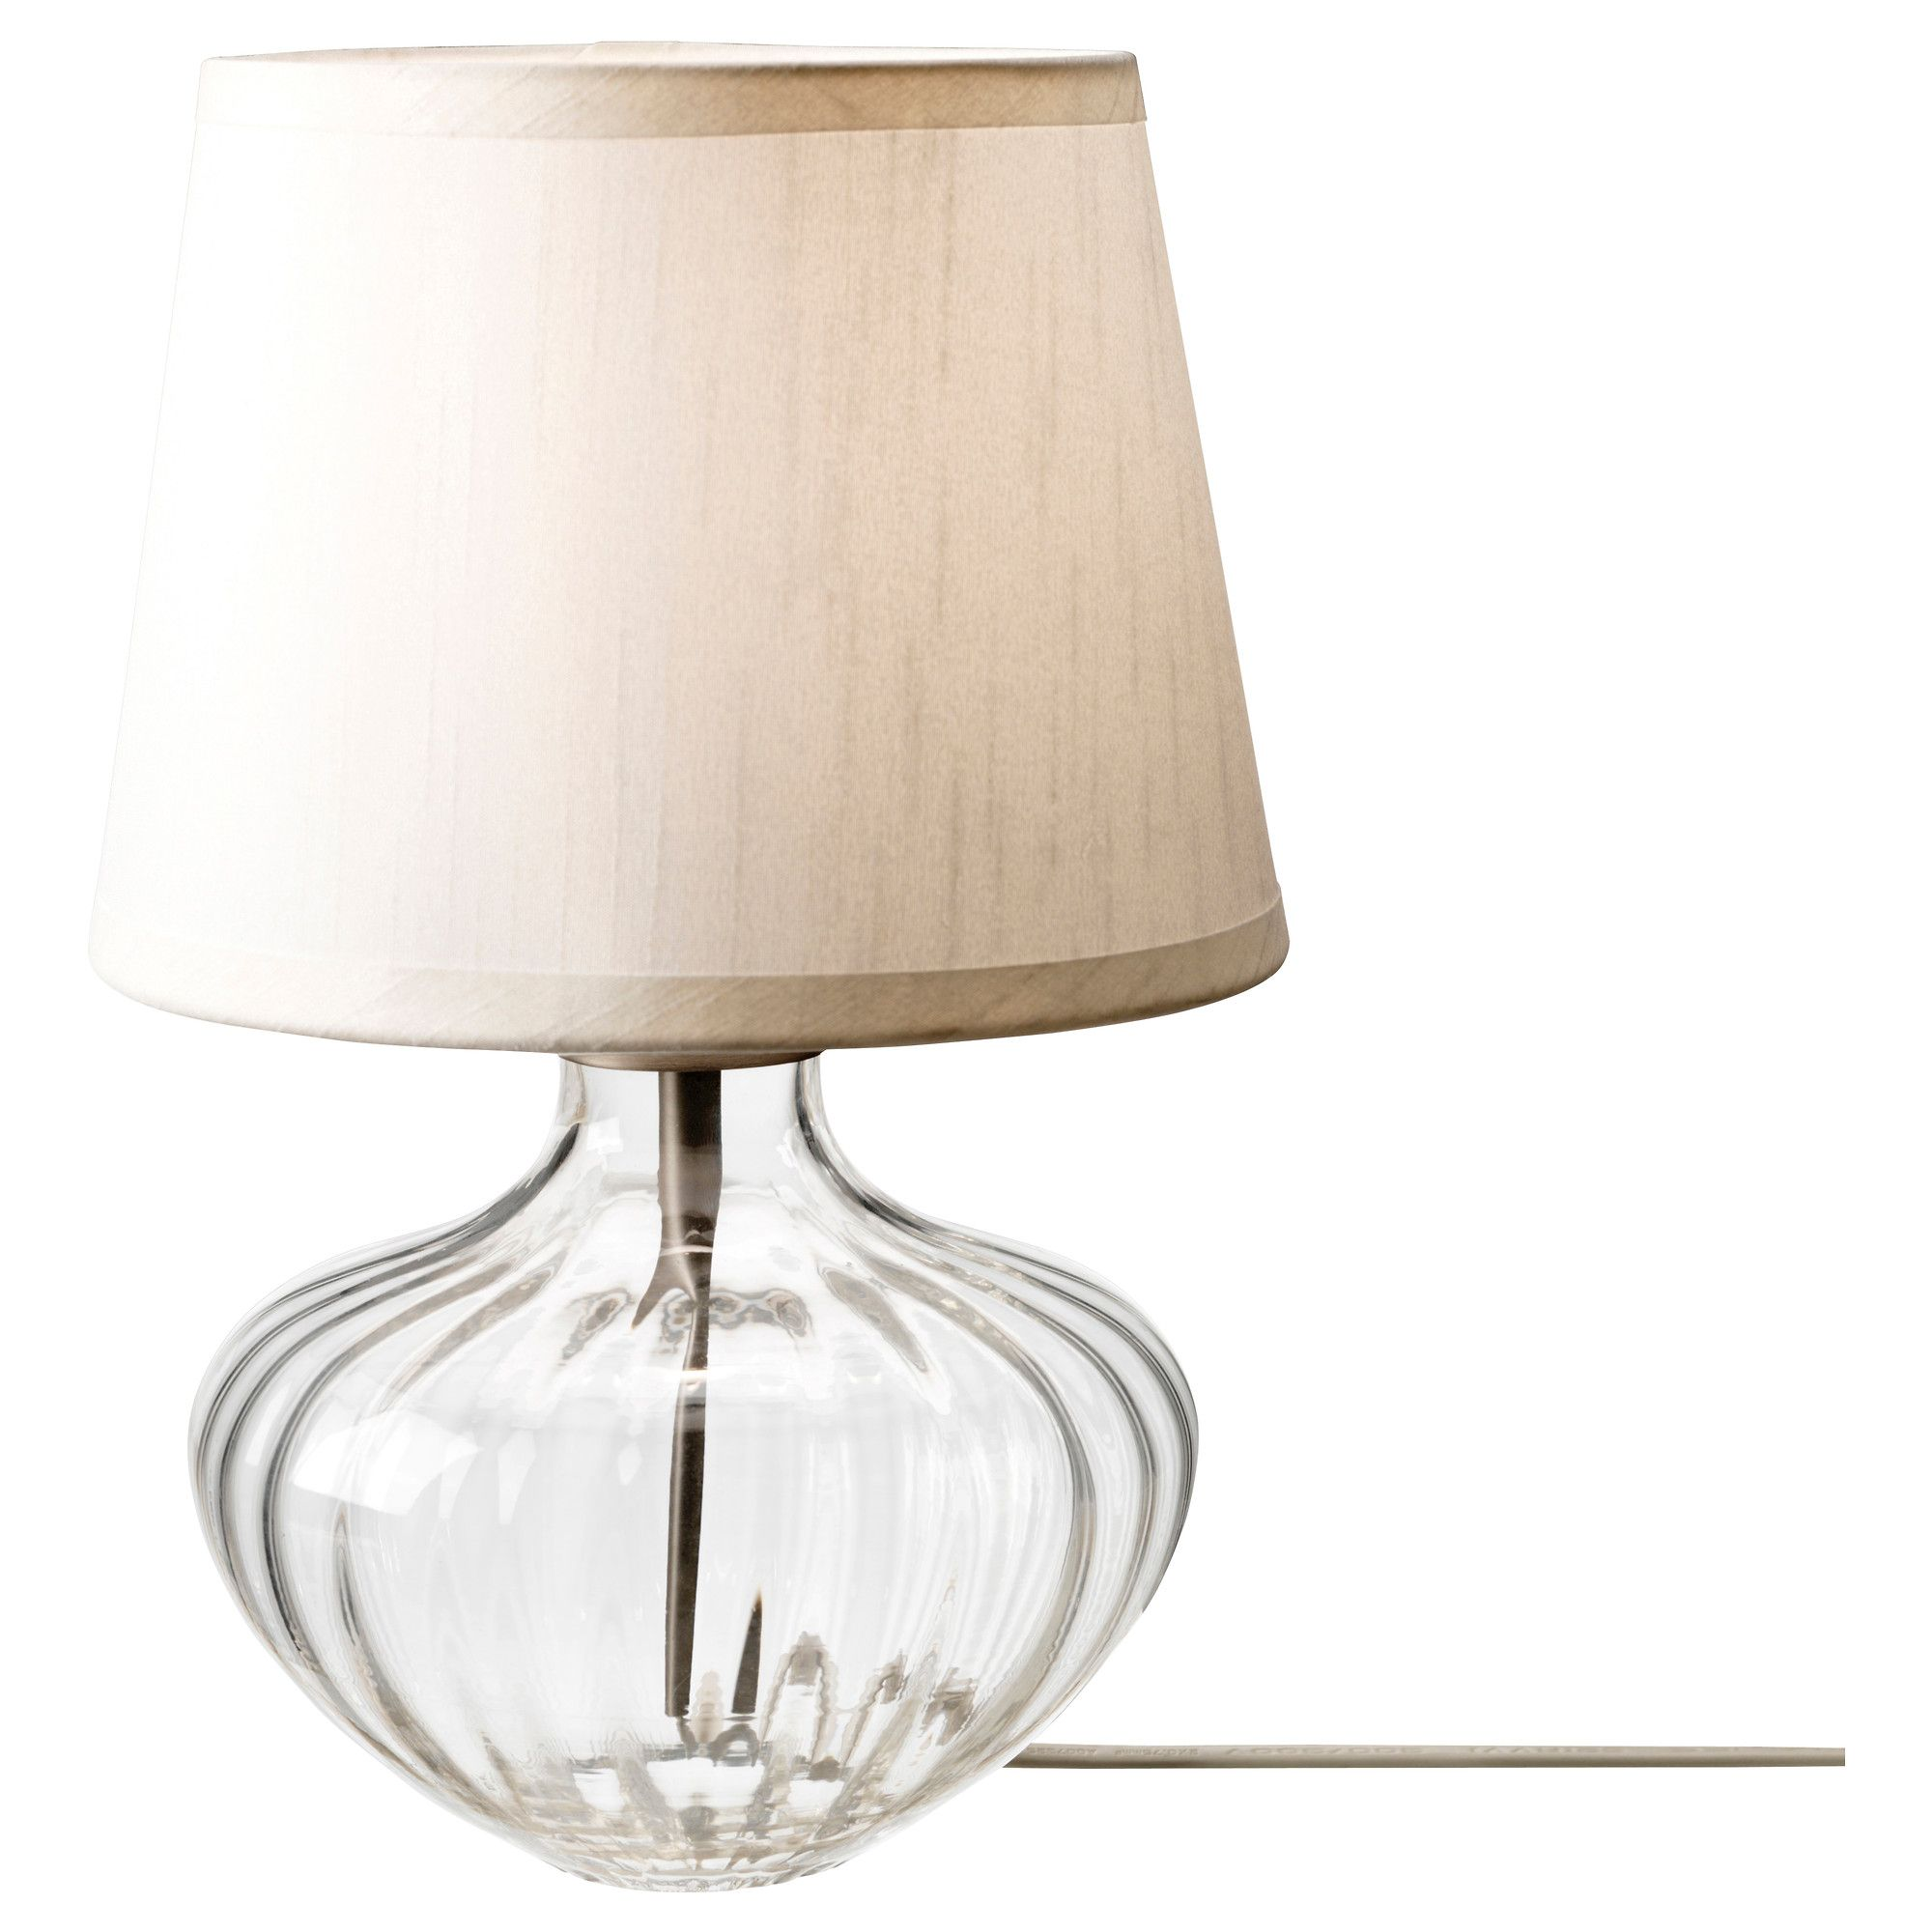 Lampe Ikea En Verre Jonsbo Egby Table Lamp Clear Glass Beige Ikea 19 99